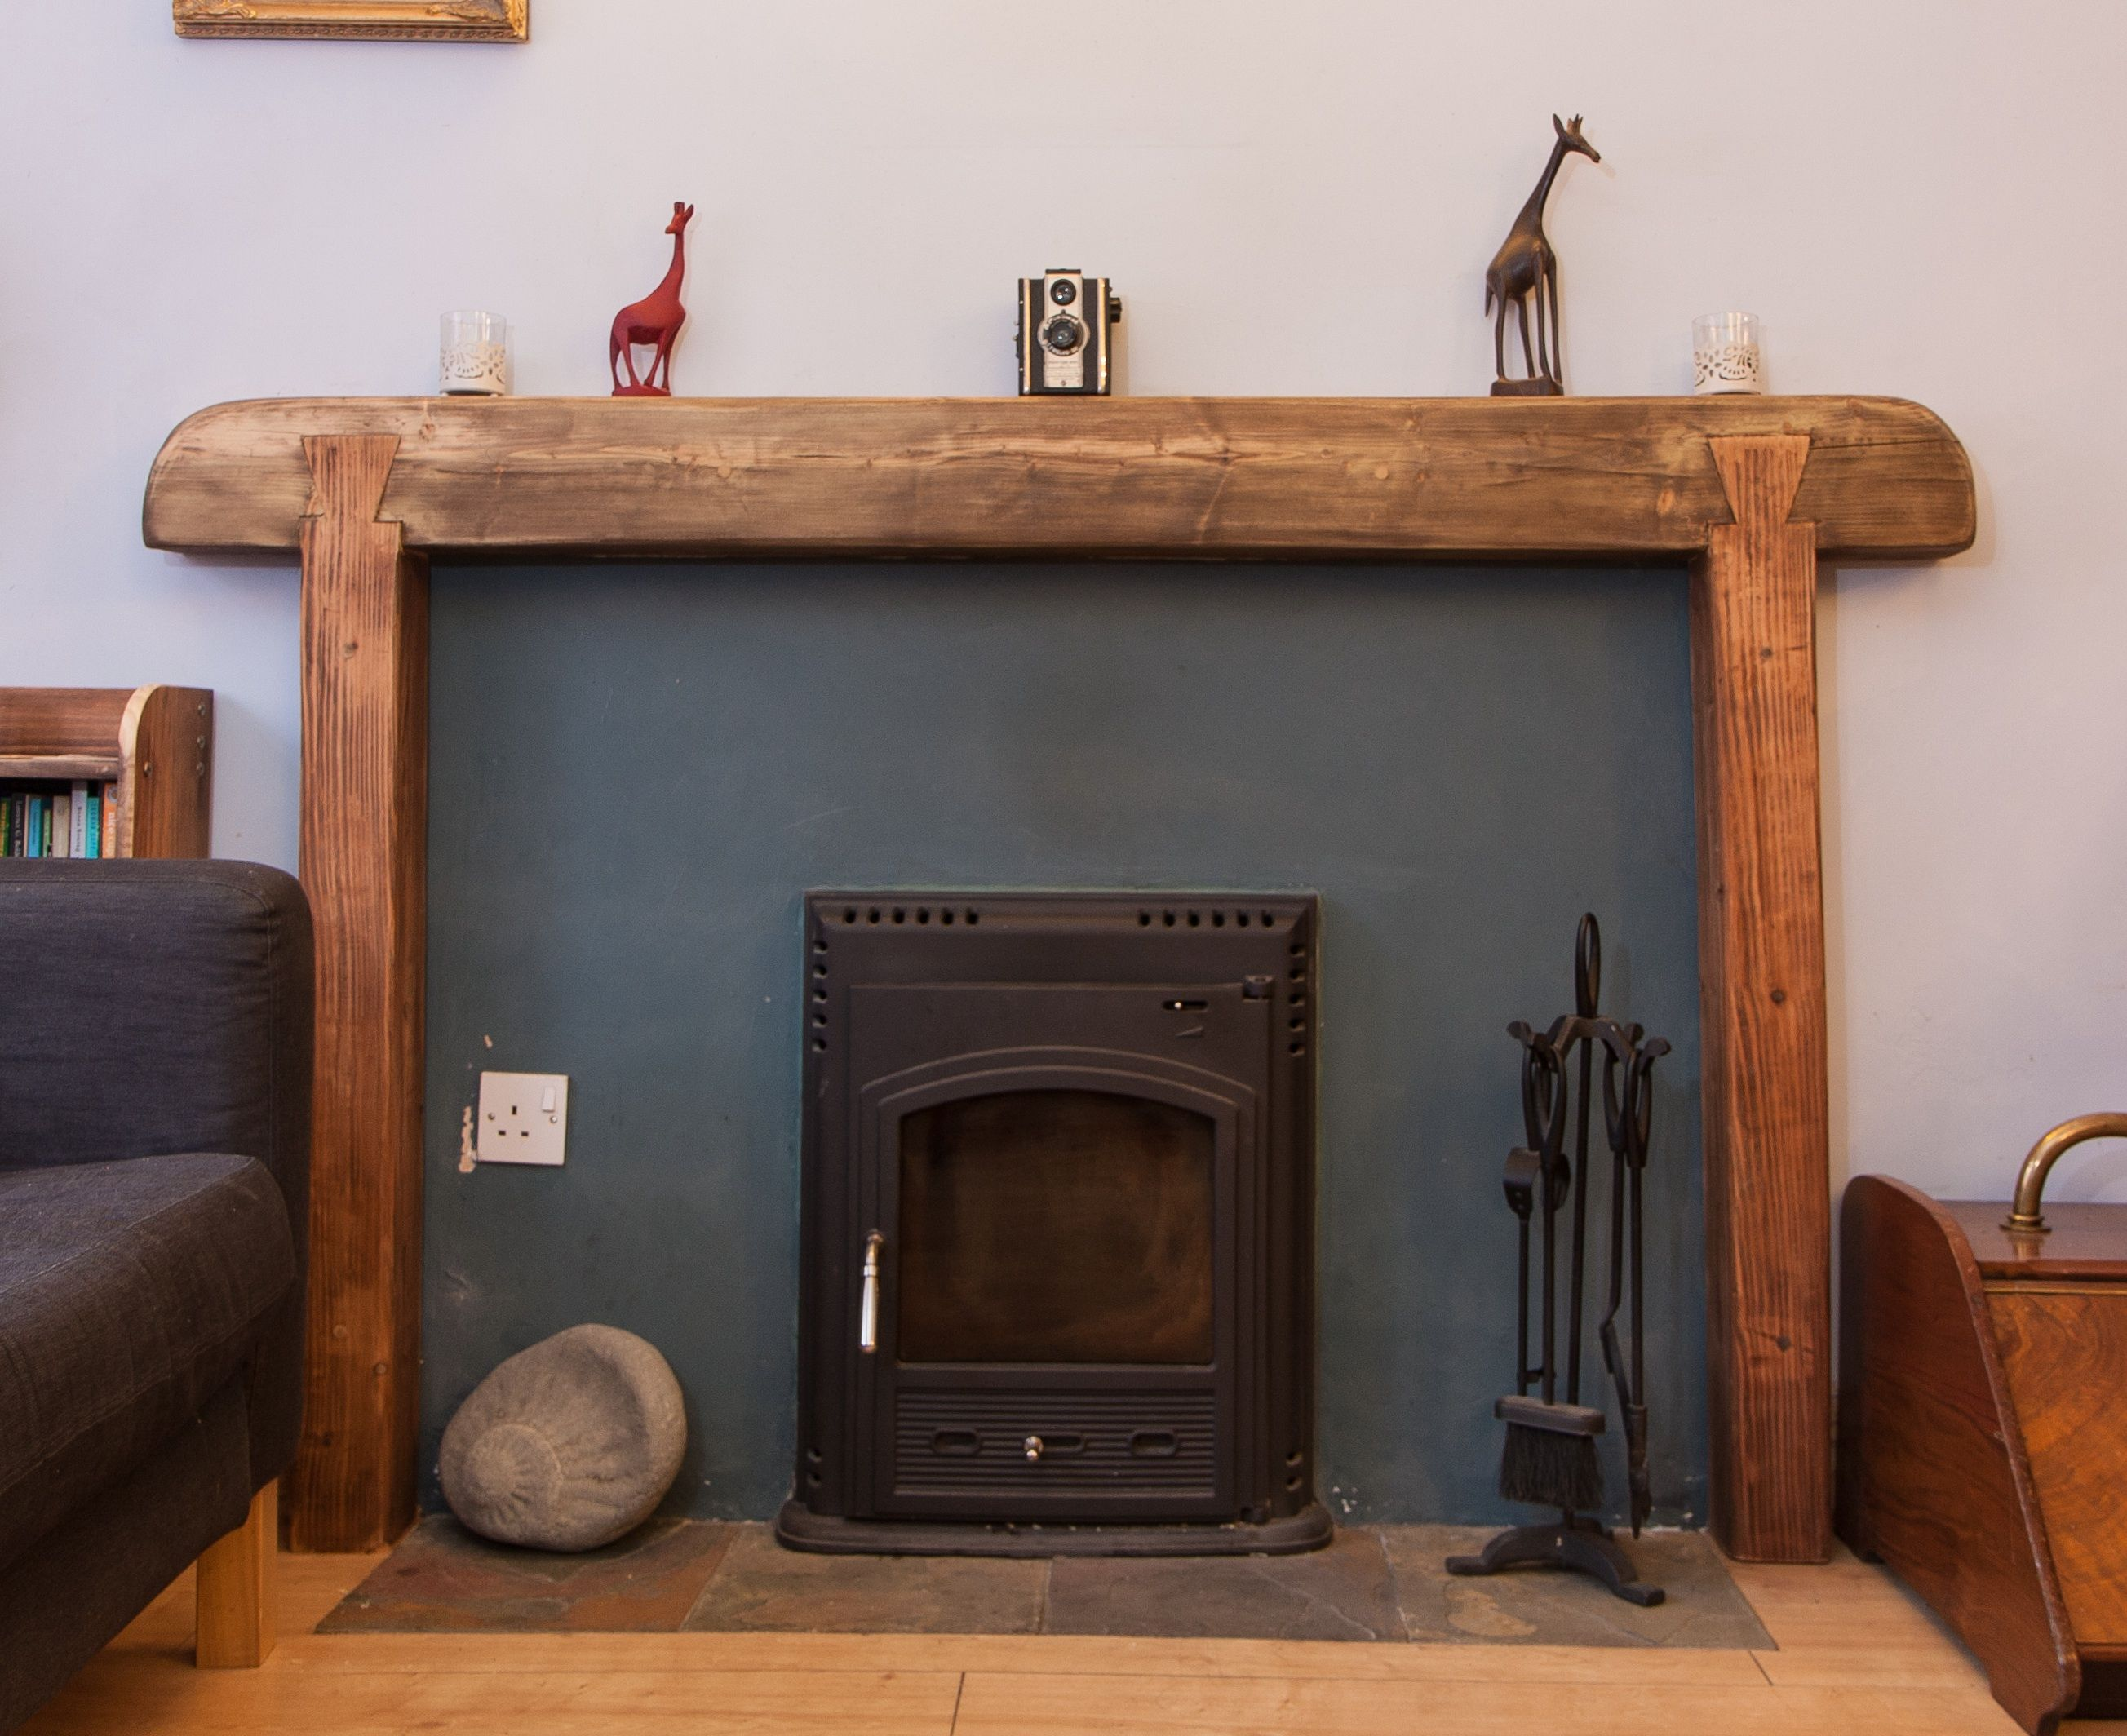 Handcrafted Fire Surround By Marc Wood Joinery 298 Image By Paul